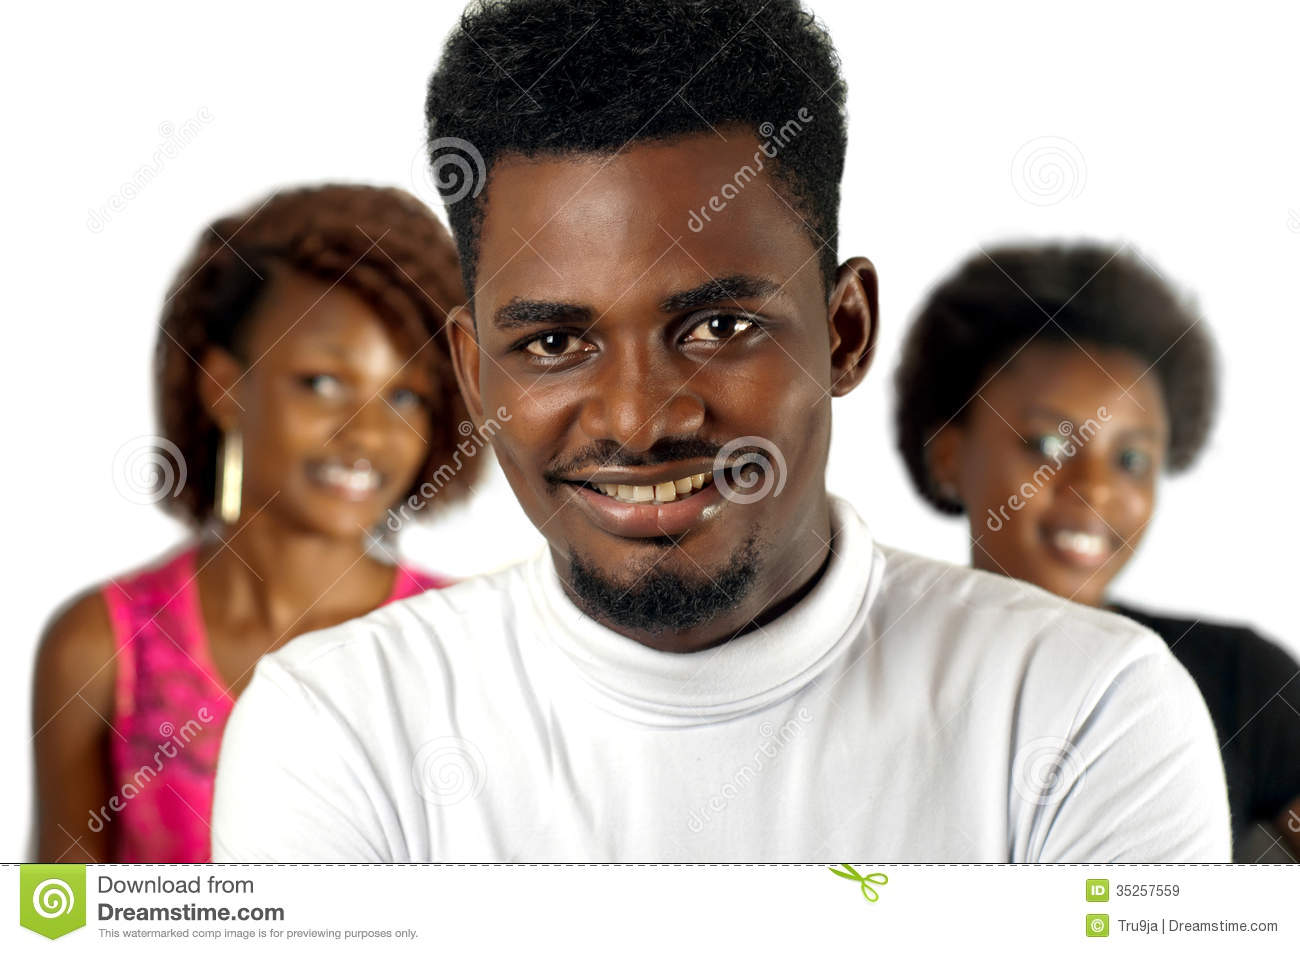 Download Casual African Man With Female Friends Stock Image - Image of smiling, education: 35257559